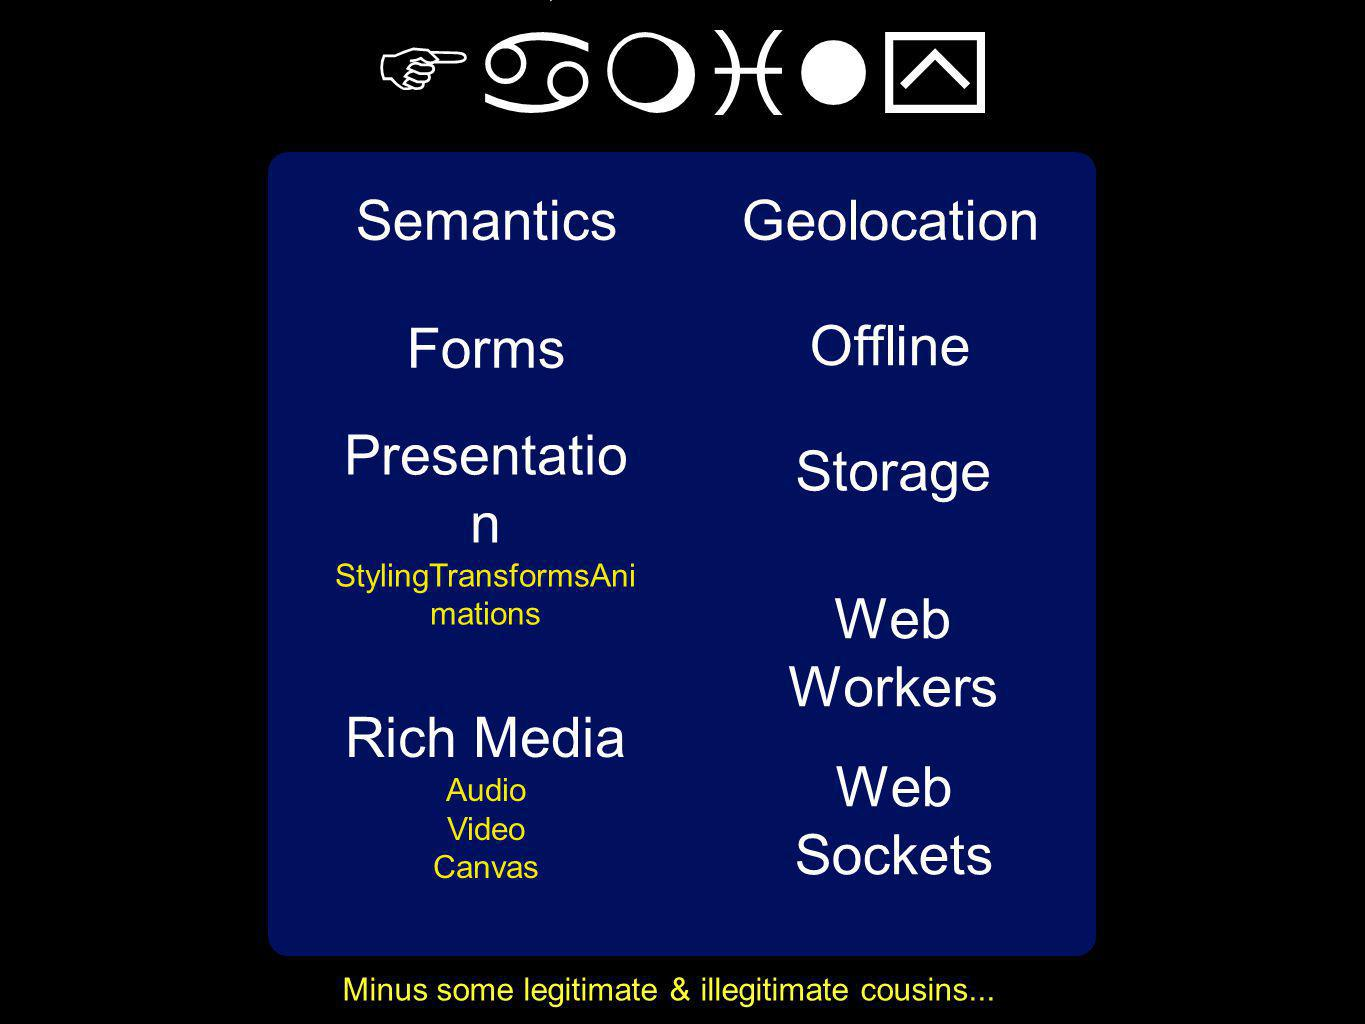 Semantics Forms Geolocation Offline Presentatio n StylingTransformsAni mations Rich Media Audio Video Canvas The HTML5 Family Minus some legitimate & illegitimate cousins...